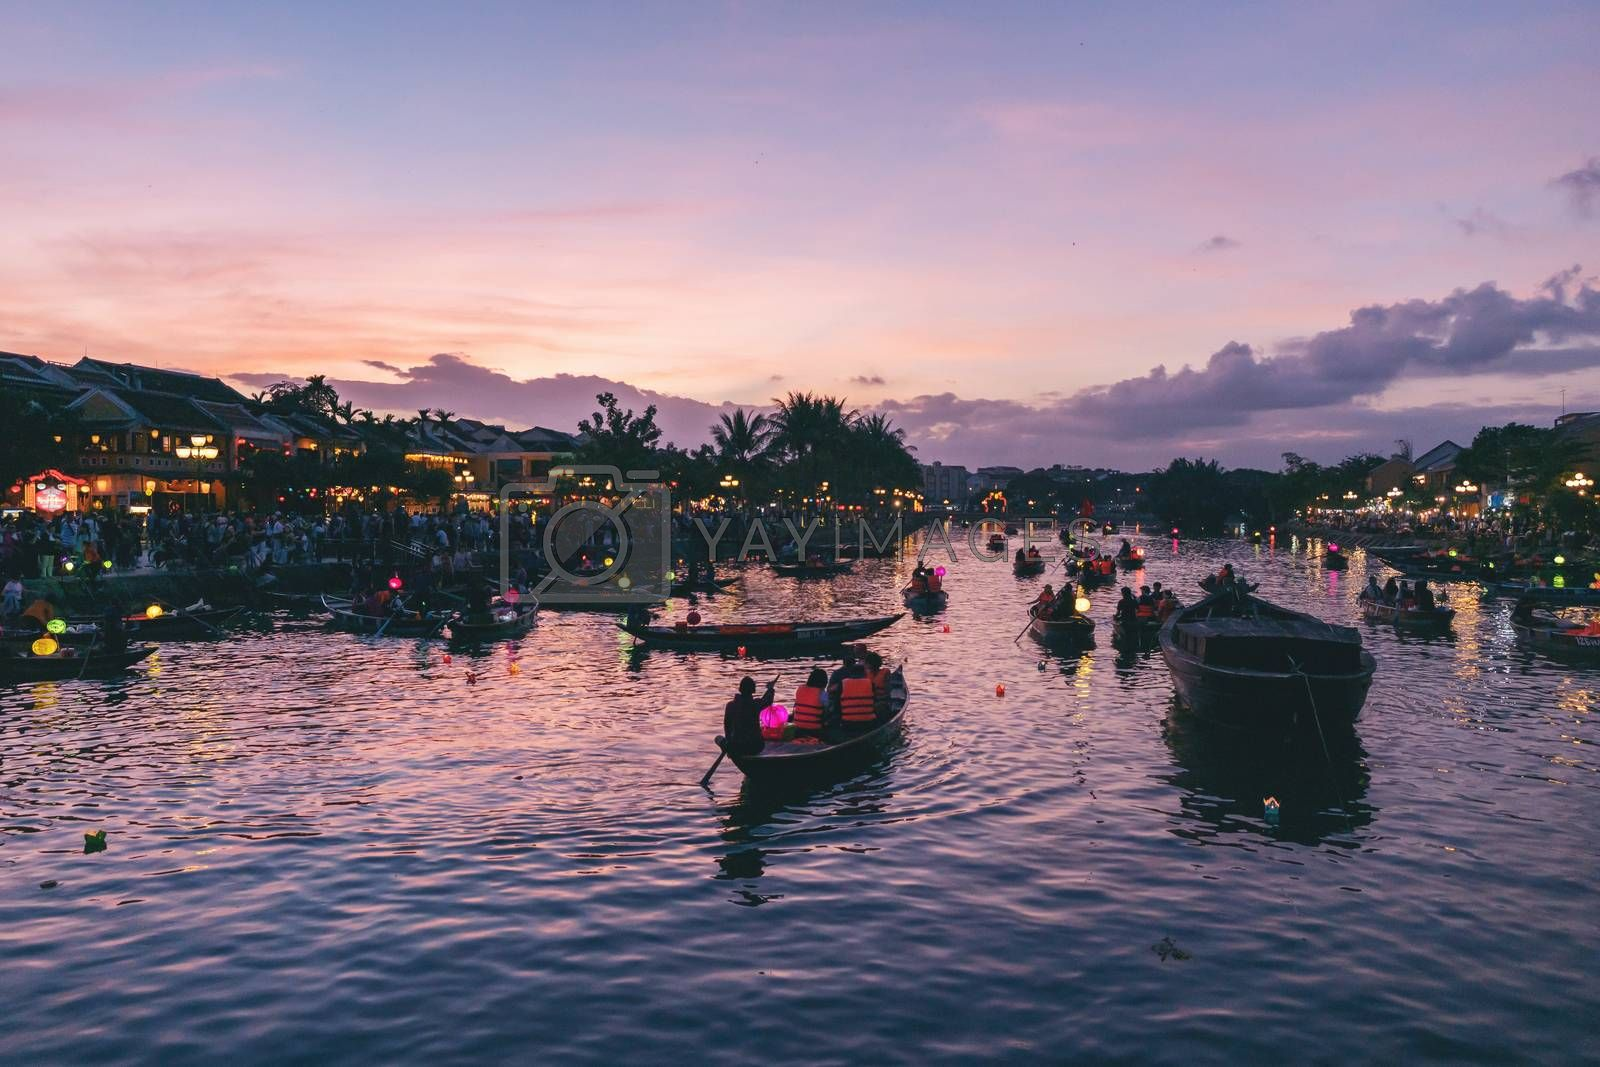 Hoian, Vietnam - 12 January, 2020: Hoi An ancient town, UNESCO world heritage. Hoi An is one of the most popular destinations in Vietnam.